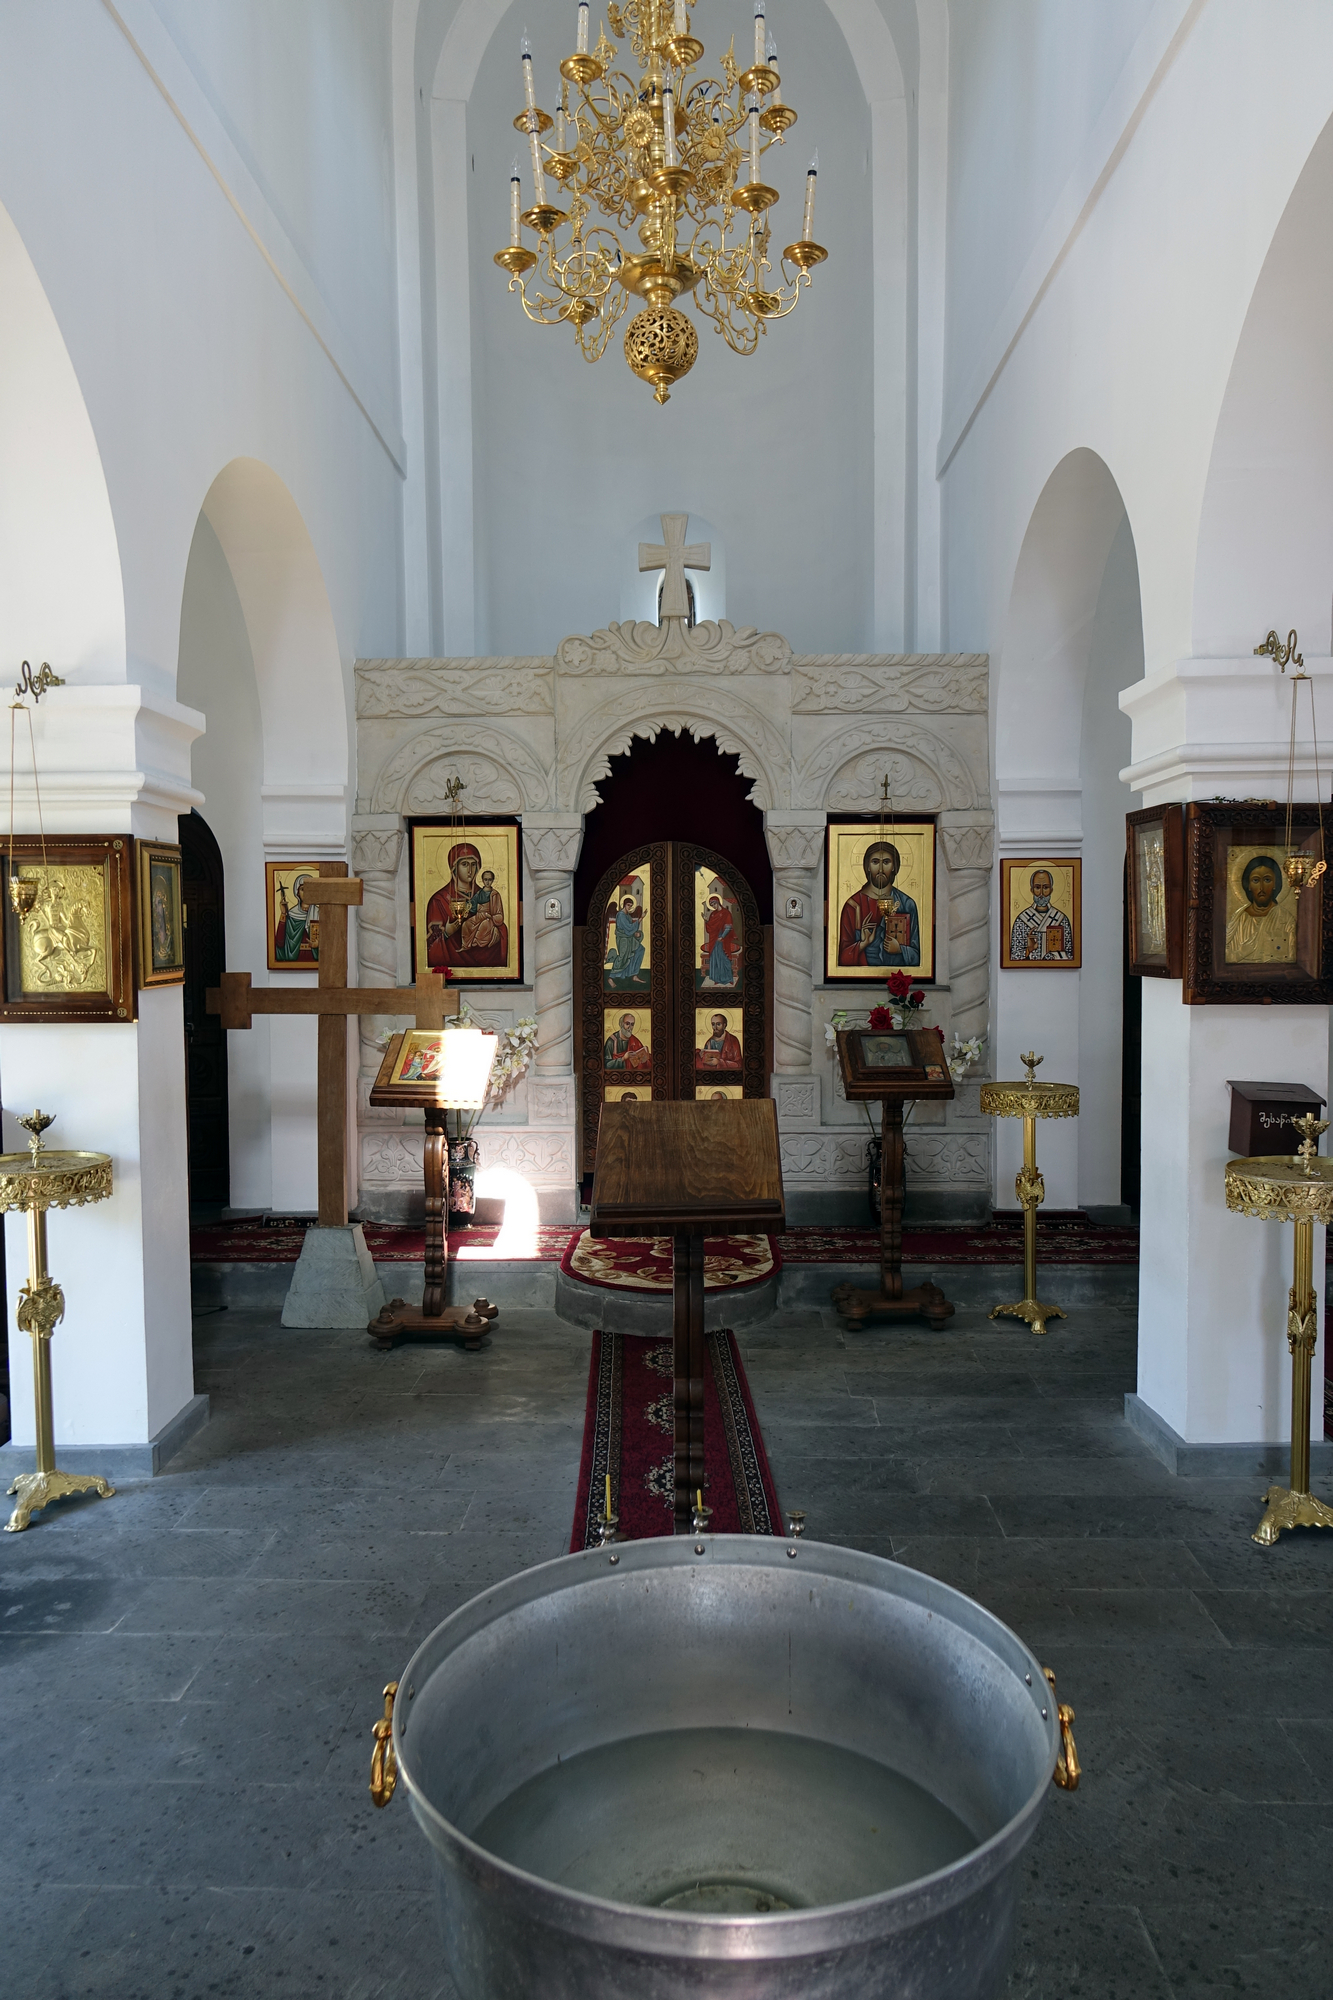 The Orthodox church in Anaklia - 2017